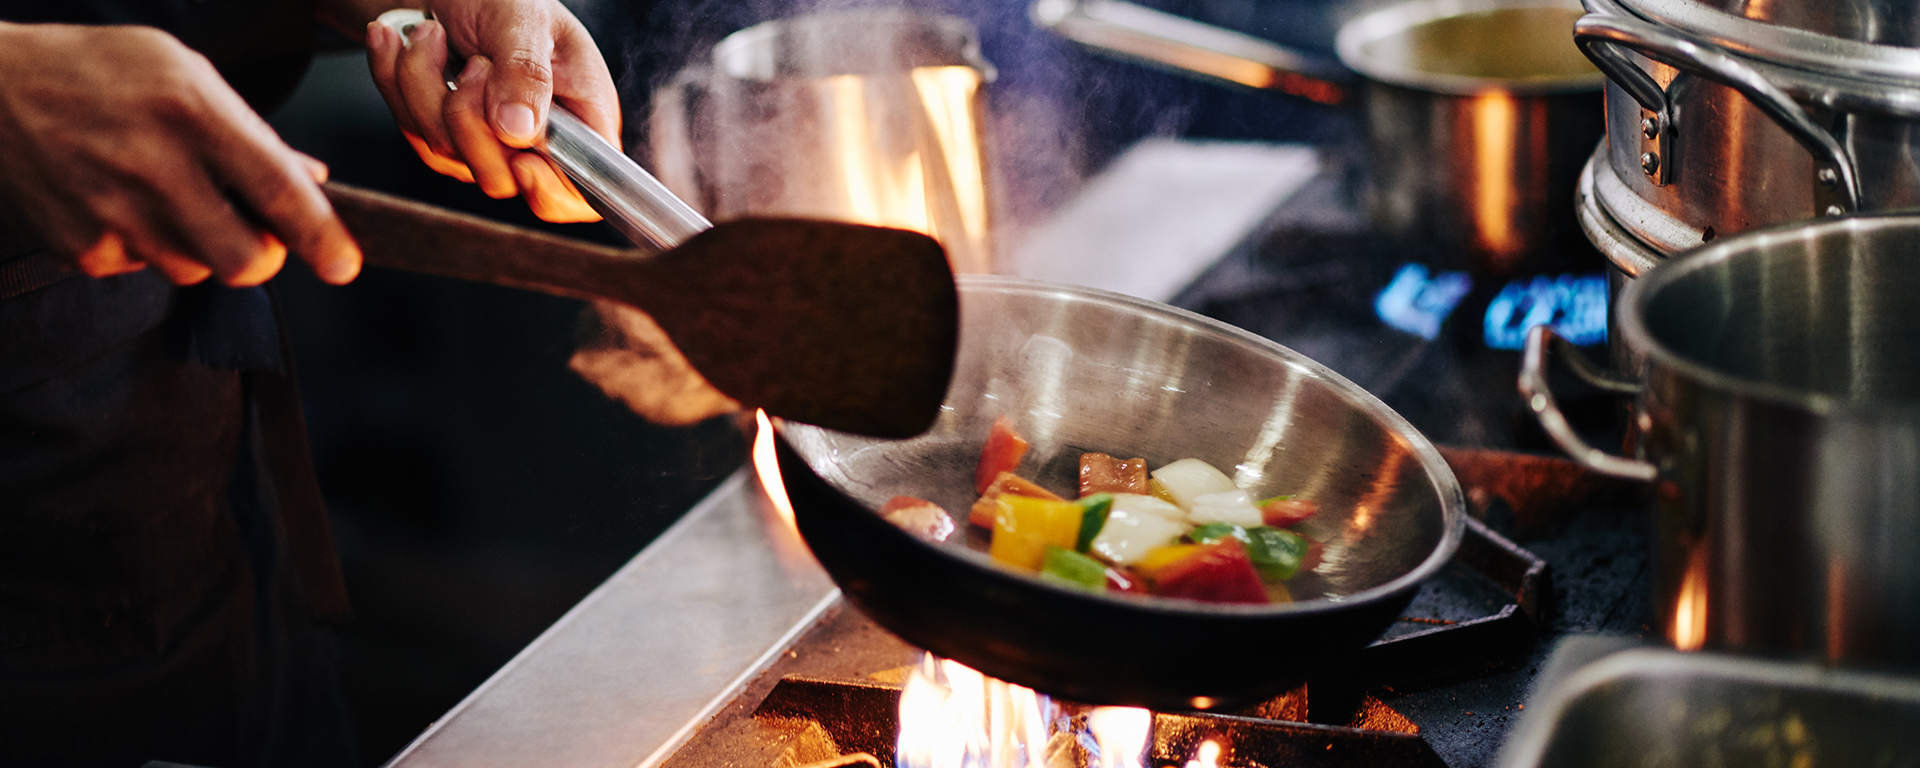 skillet with sauteed vegetables